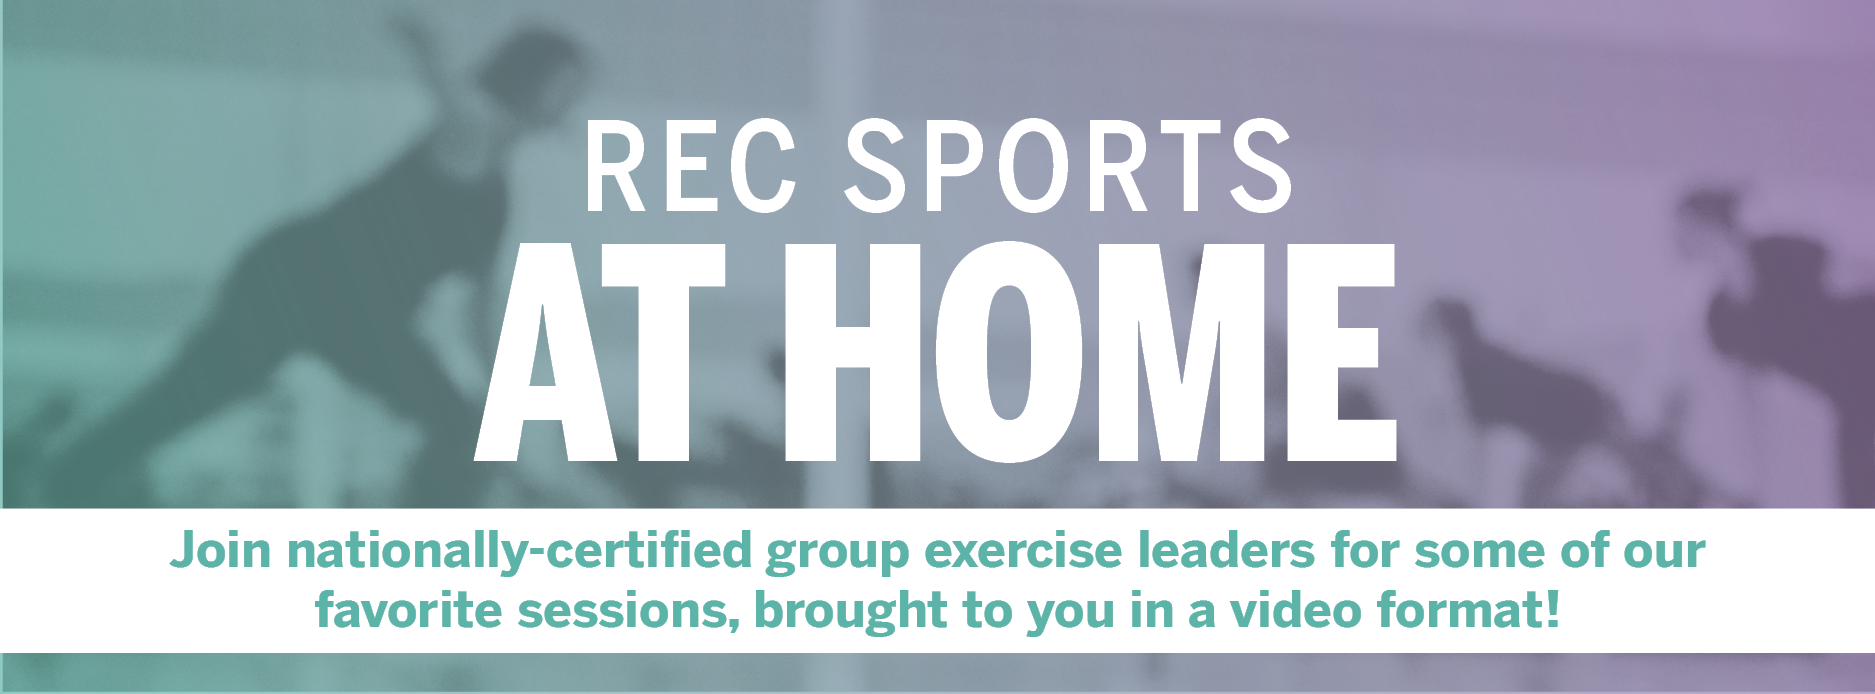 REC SPORTS AT HOME New videos drop every Monday at 12pm Join nationally-certified group exercise leaders for some of our  favorite sessions, brought to you in a video format!